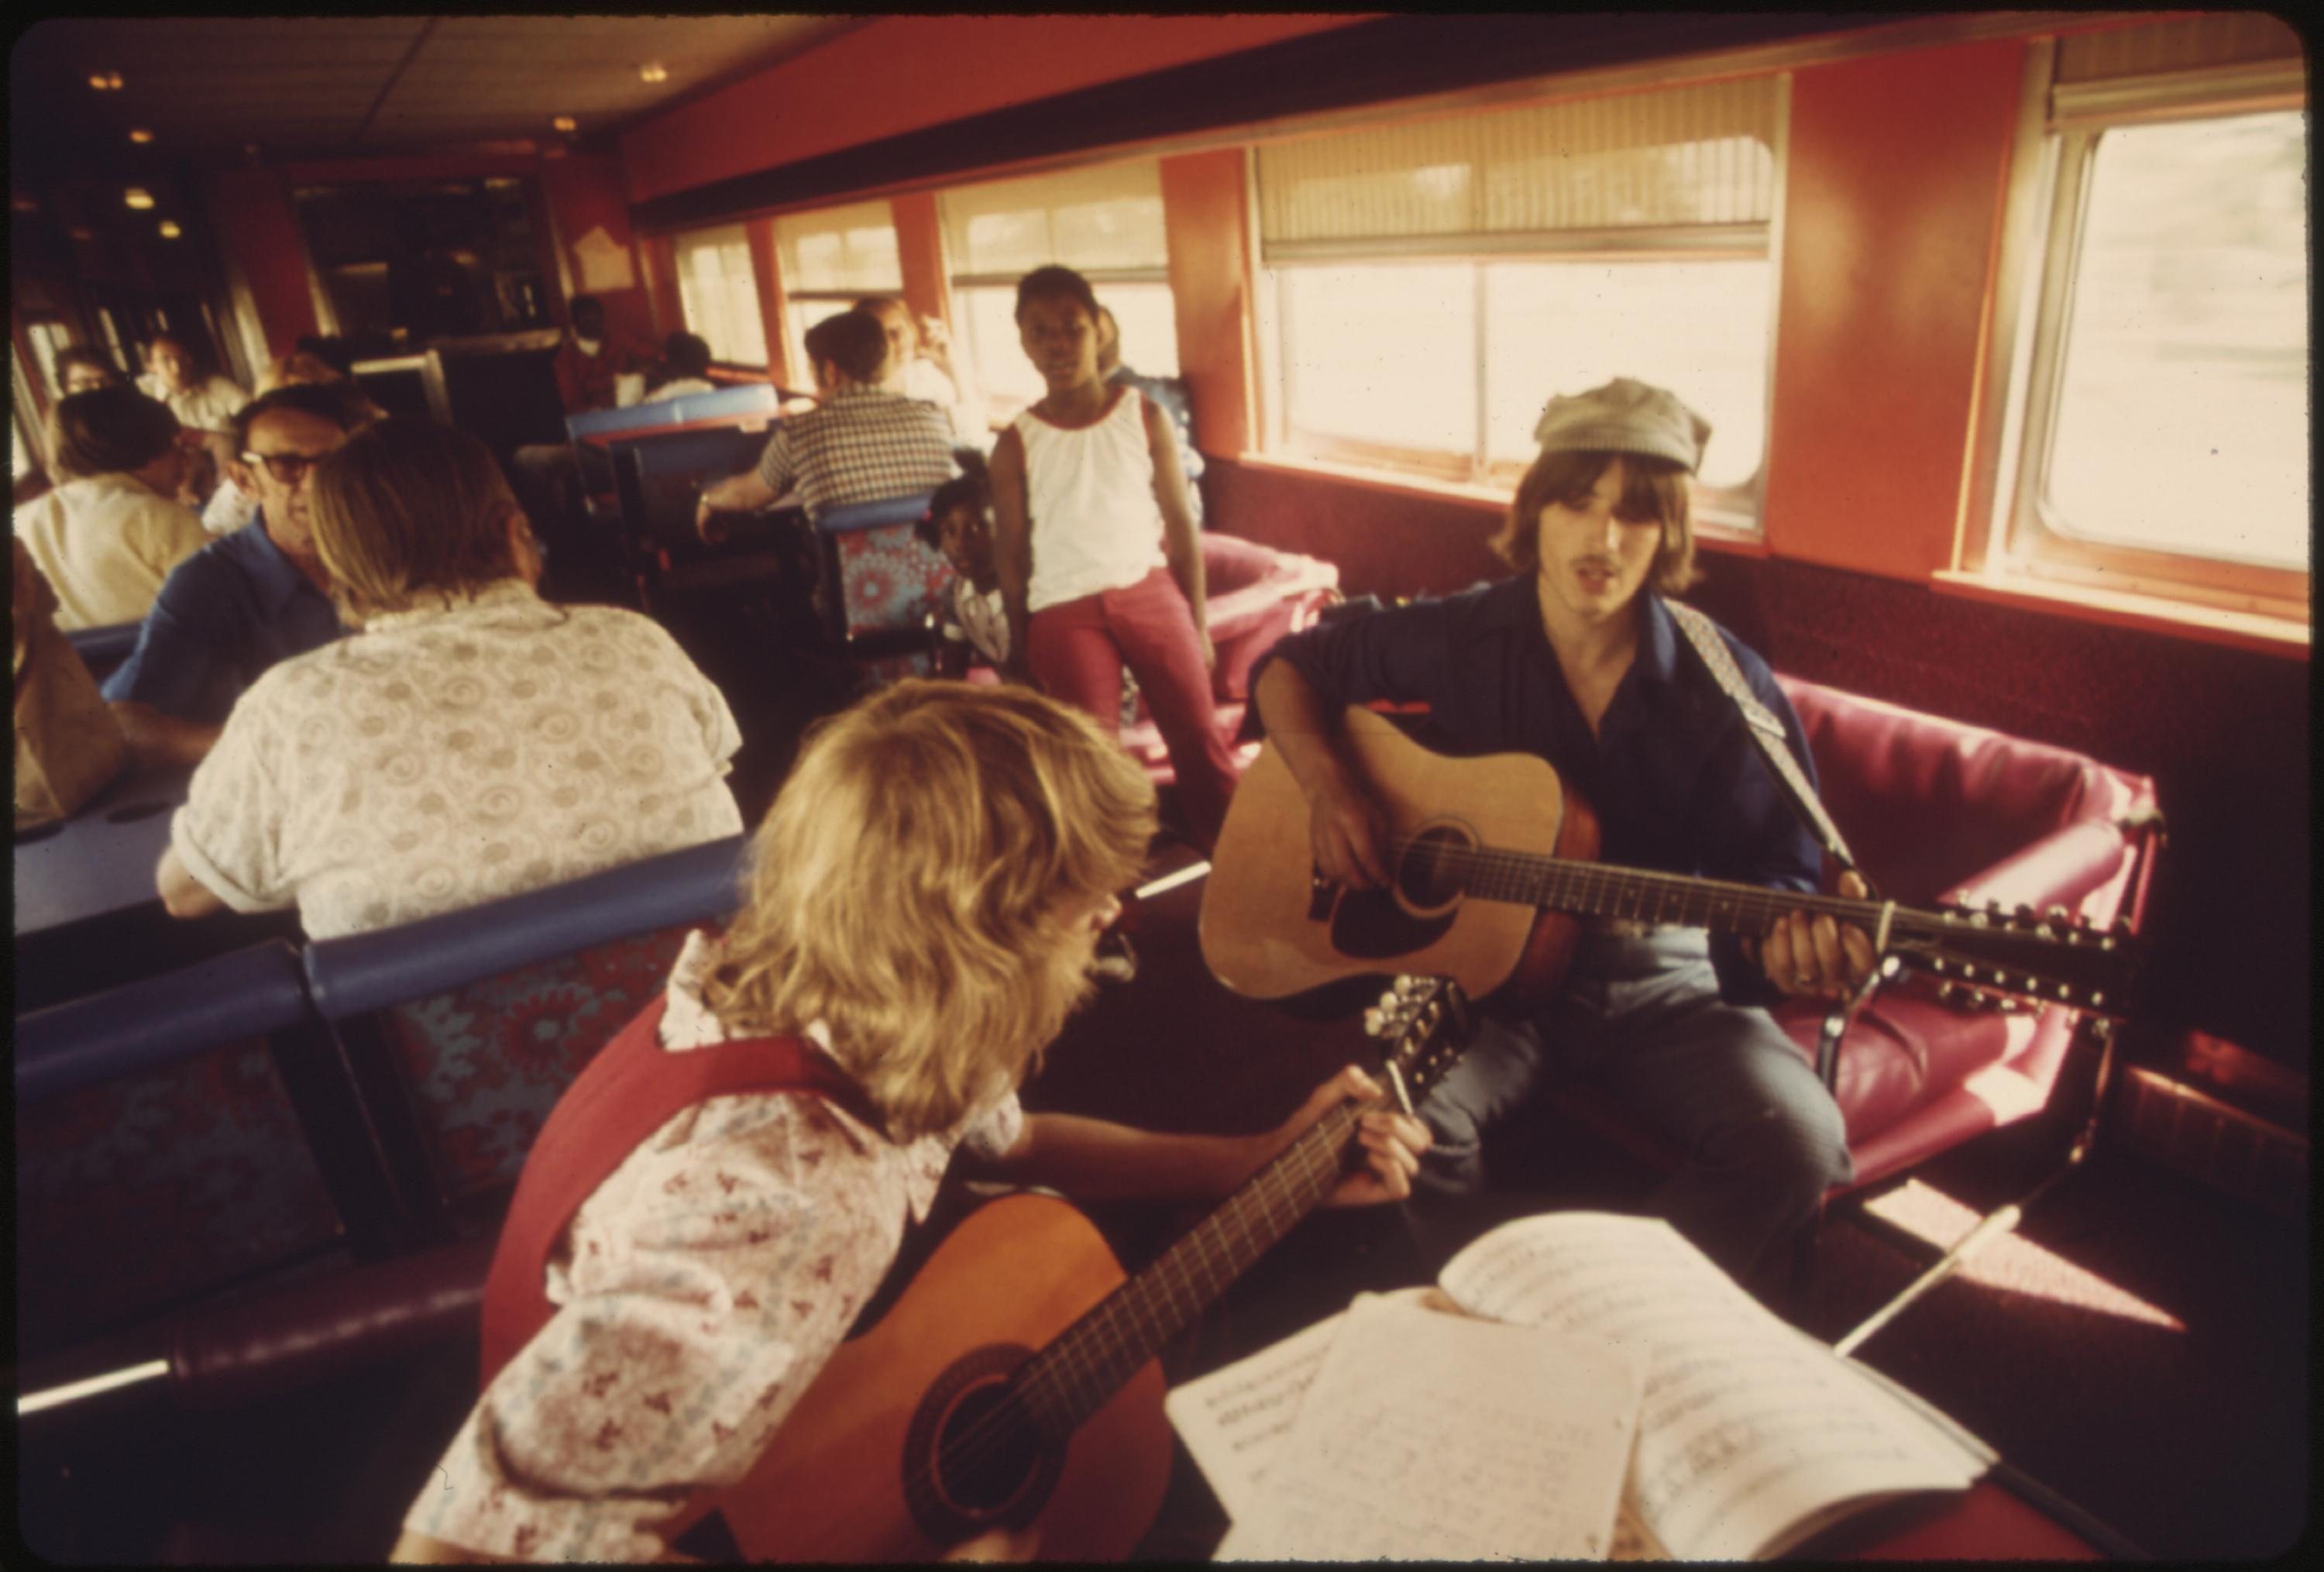 An impromptu guitar session provides a little music for passengers in the lounge car of the Lone Star as it crosses Oklahoma enroute from Chicago to Houston, Texas, June 1974